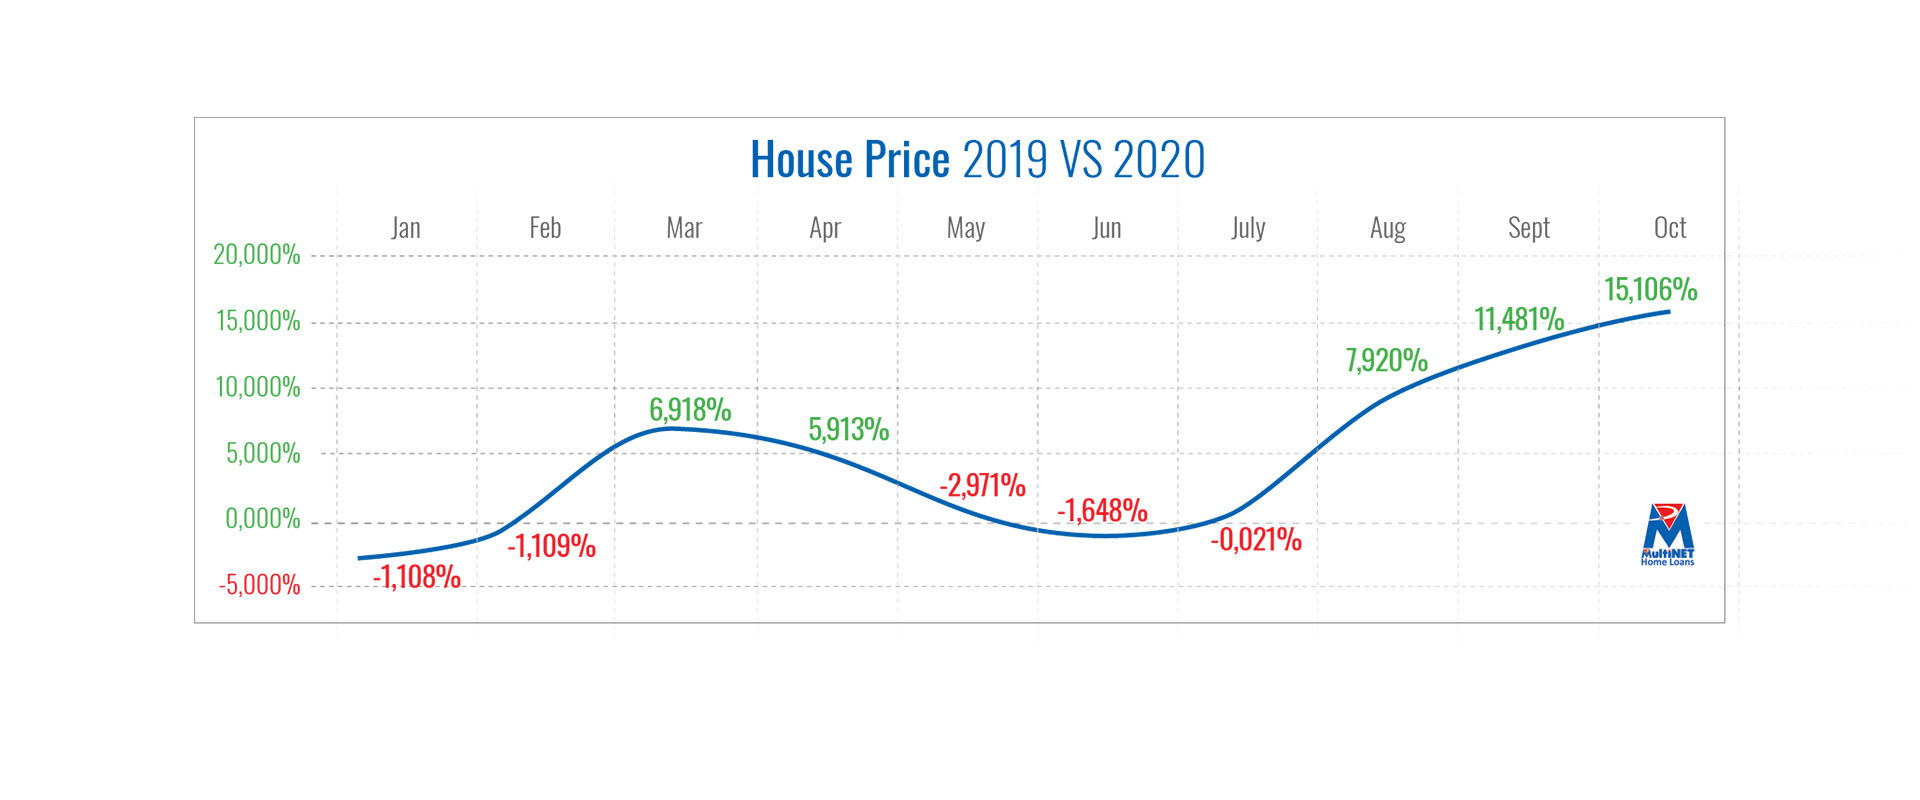 House price growth in double digits